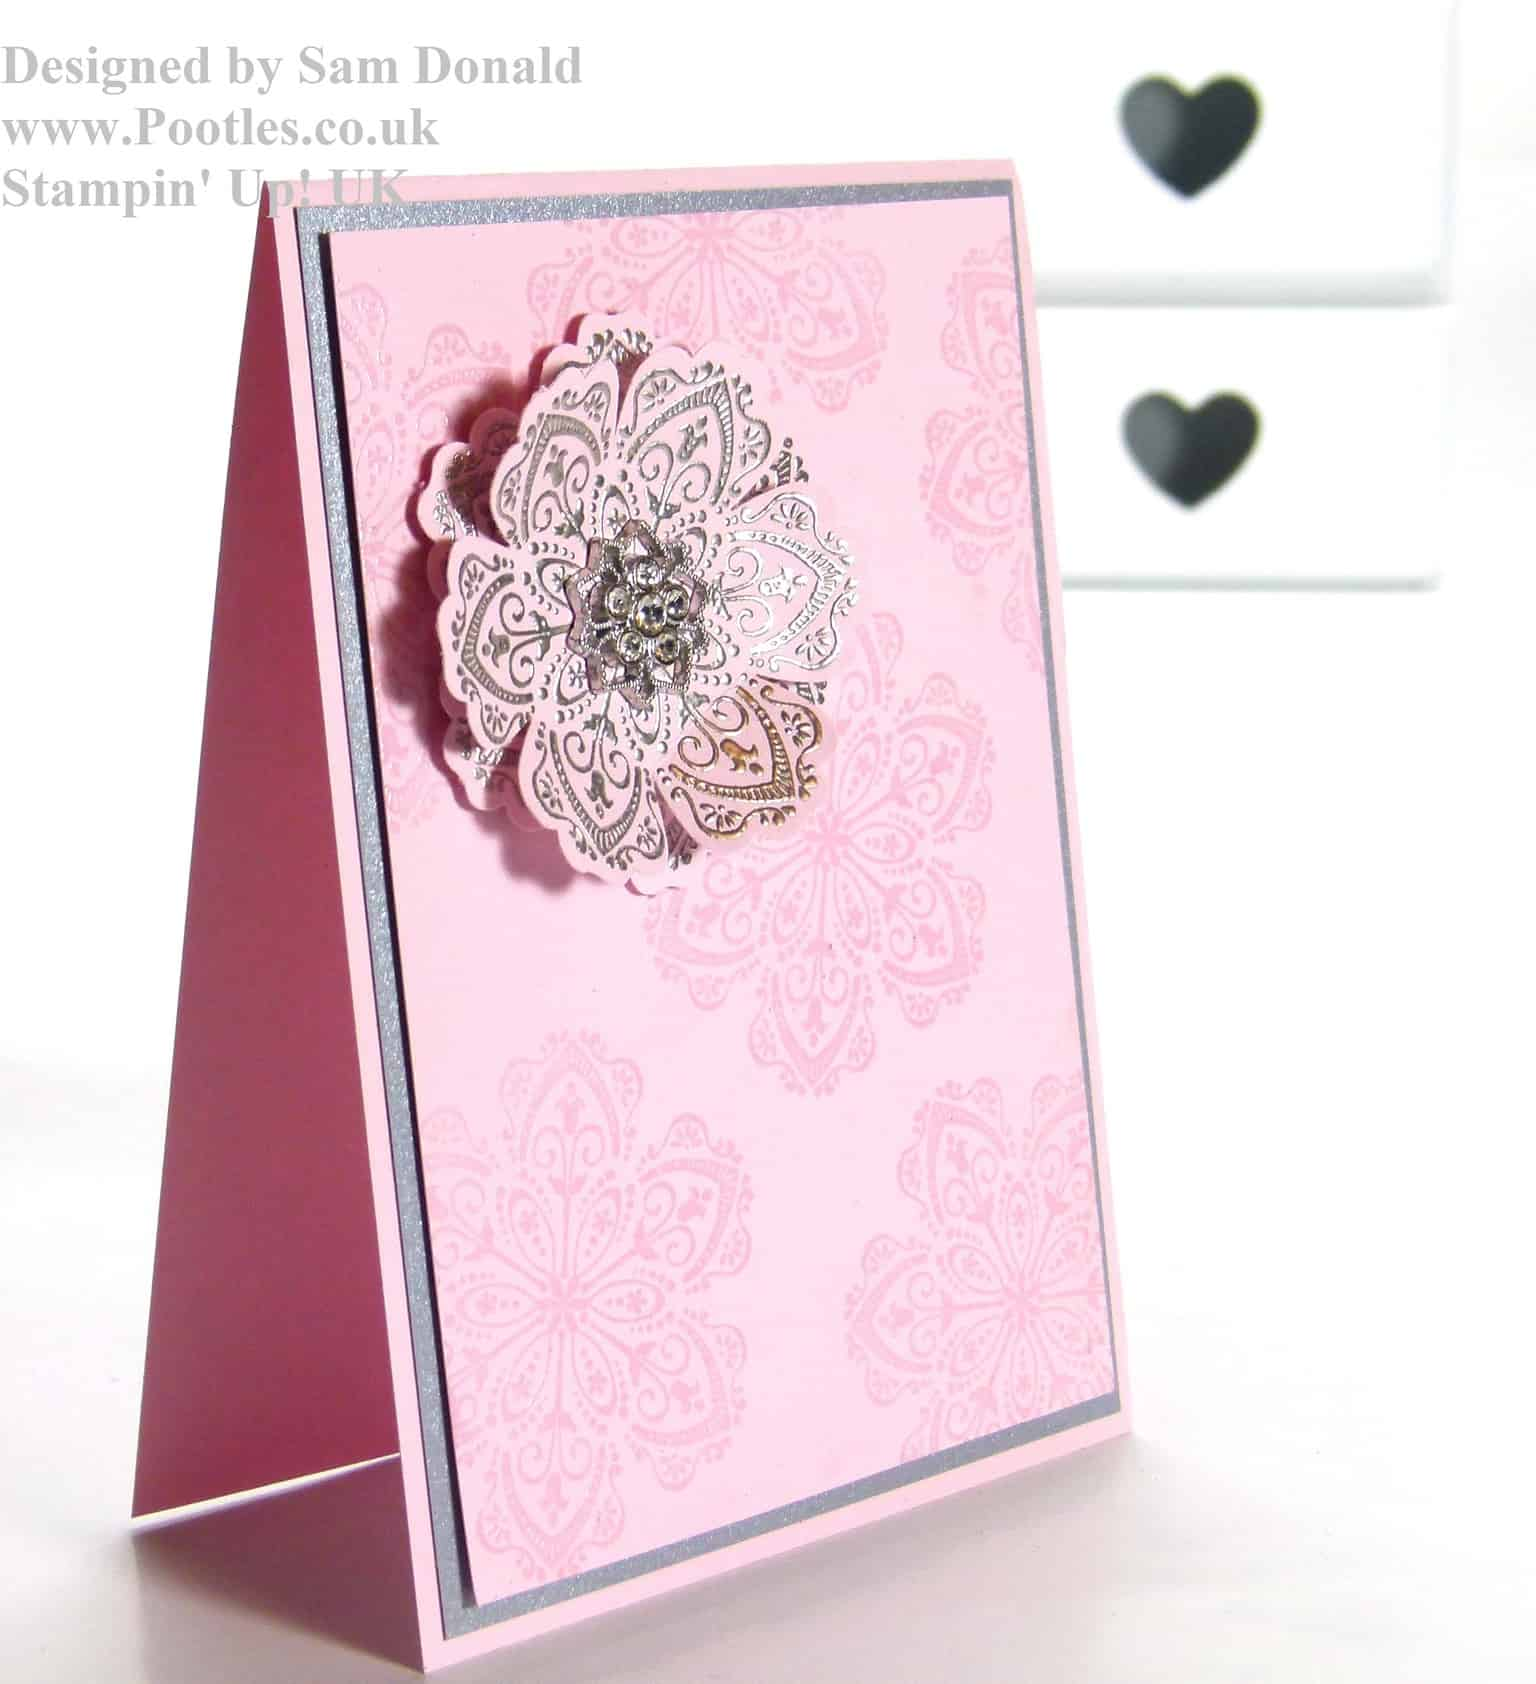 POOTLES Stampin Up UK Silver Embossed Mixed Bunch 2